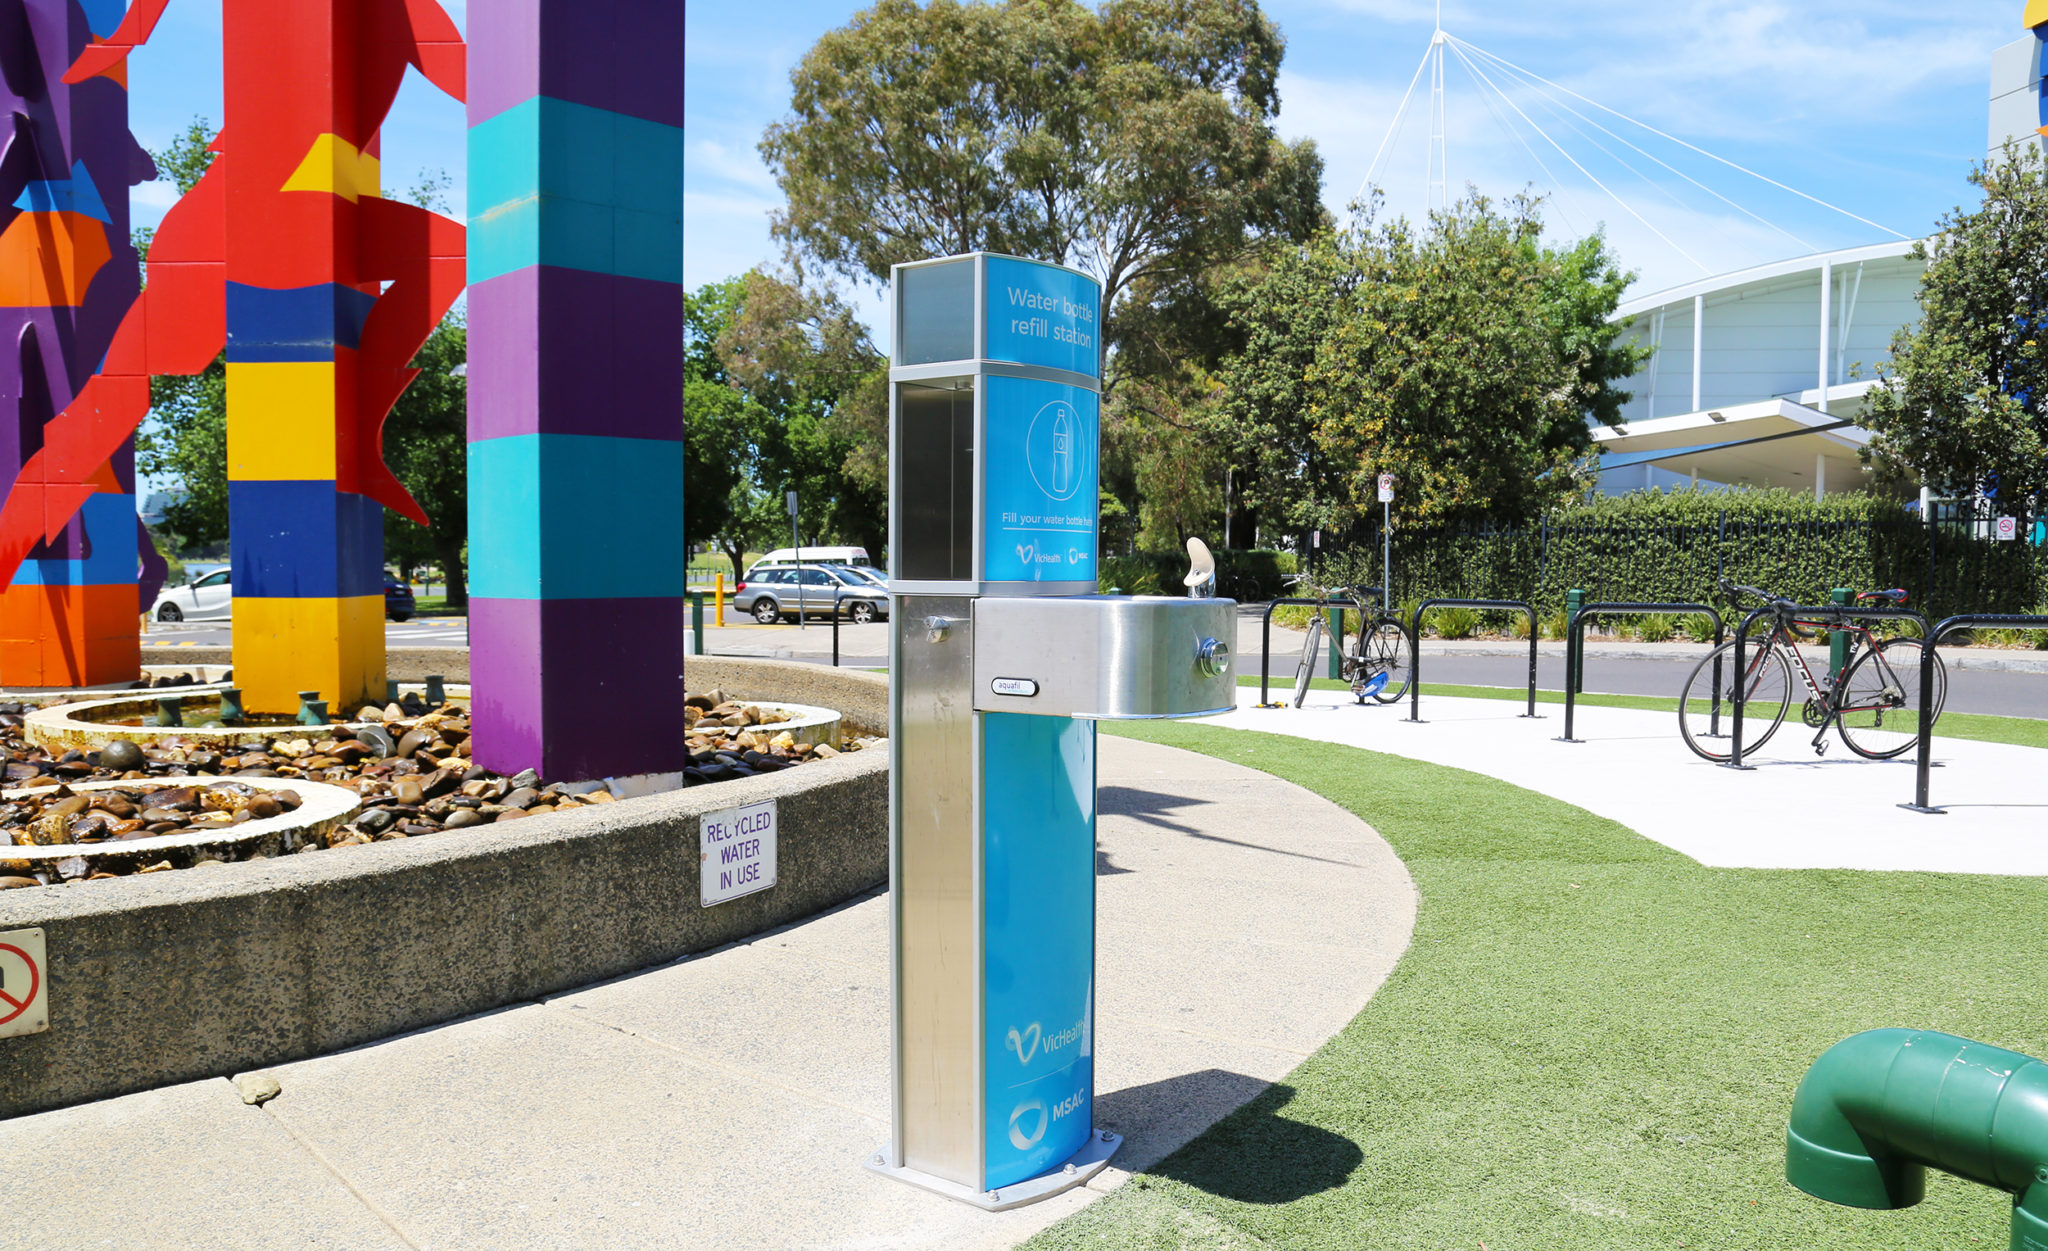 A side view of the Outdoor  drinking water stations with blue artwork installed near a fountain out the front of Melbourne Sports and Aquatic Centre